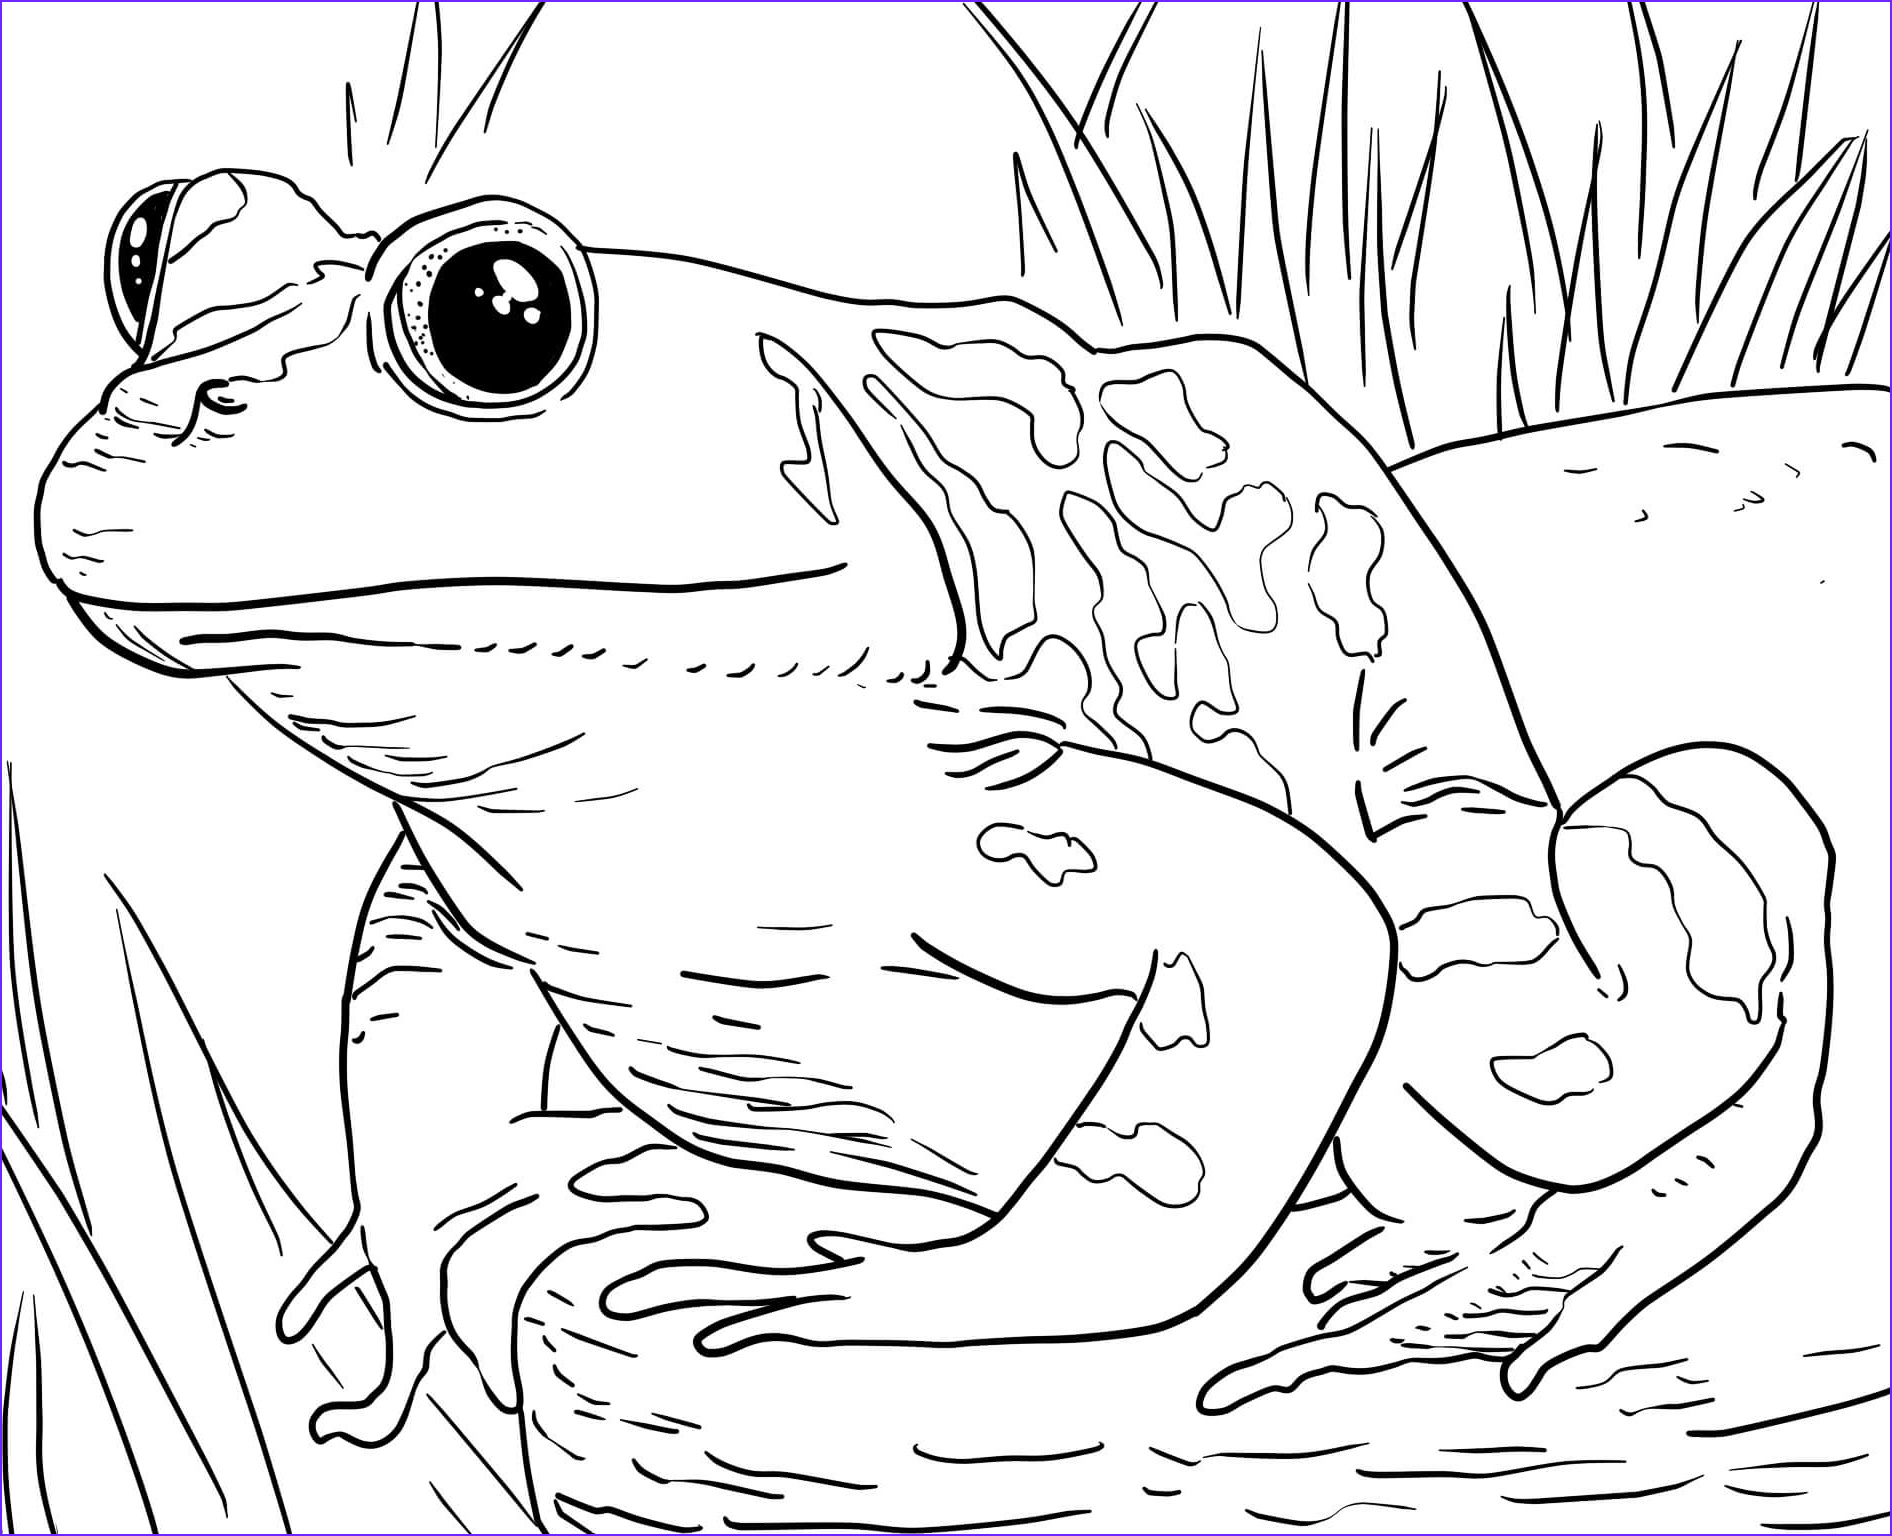 Zoo Animals Coloring Pages Inspirational Photography Zoo Animals Coloring Pages Best Coloring Pages for Kids